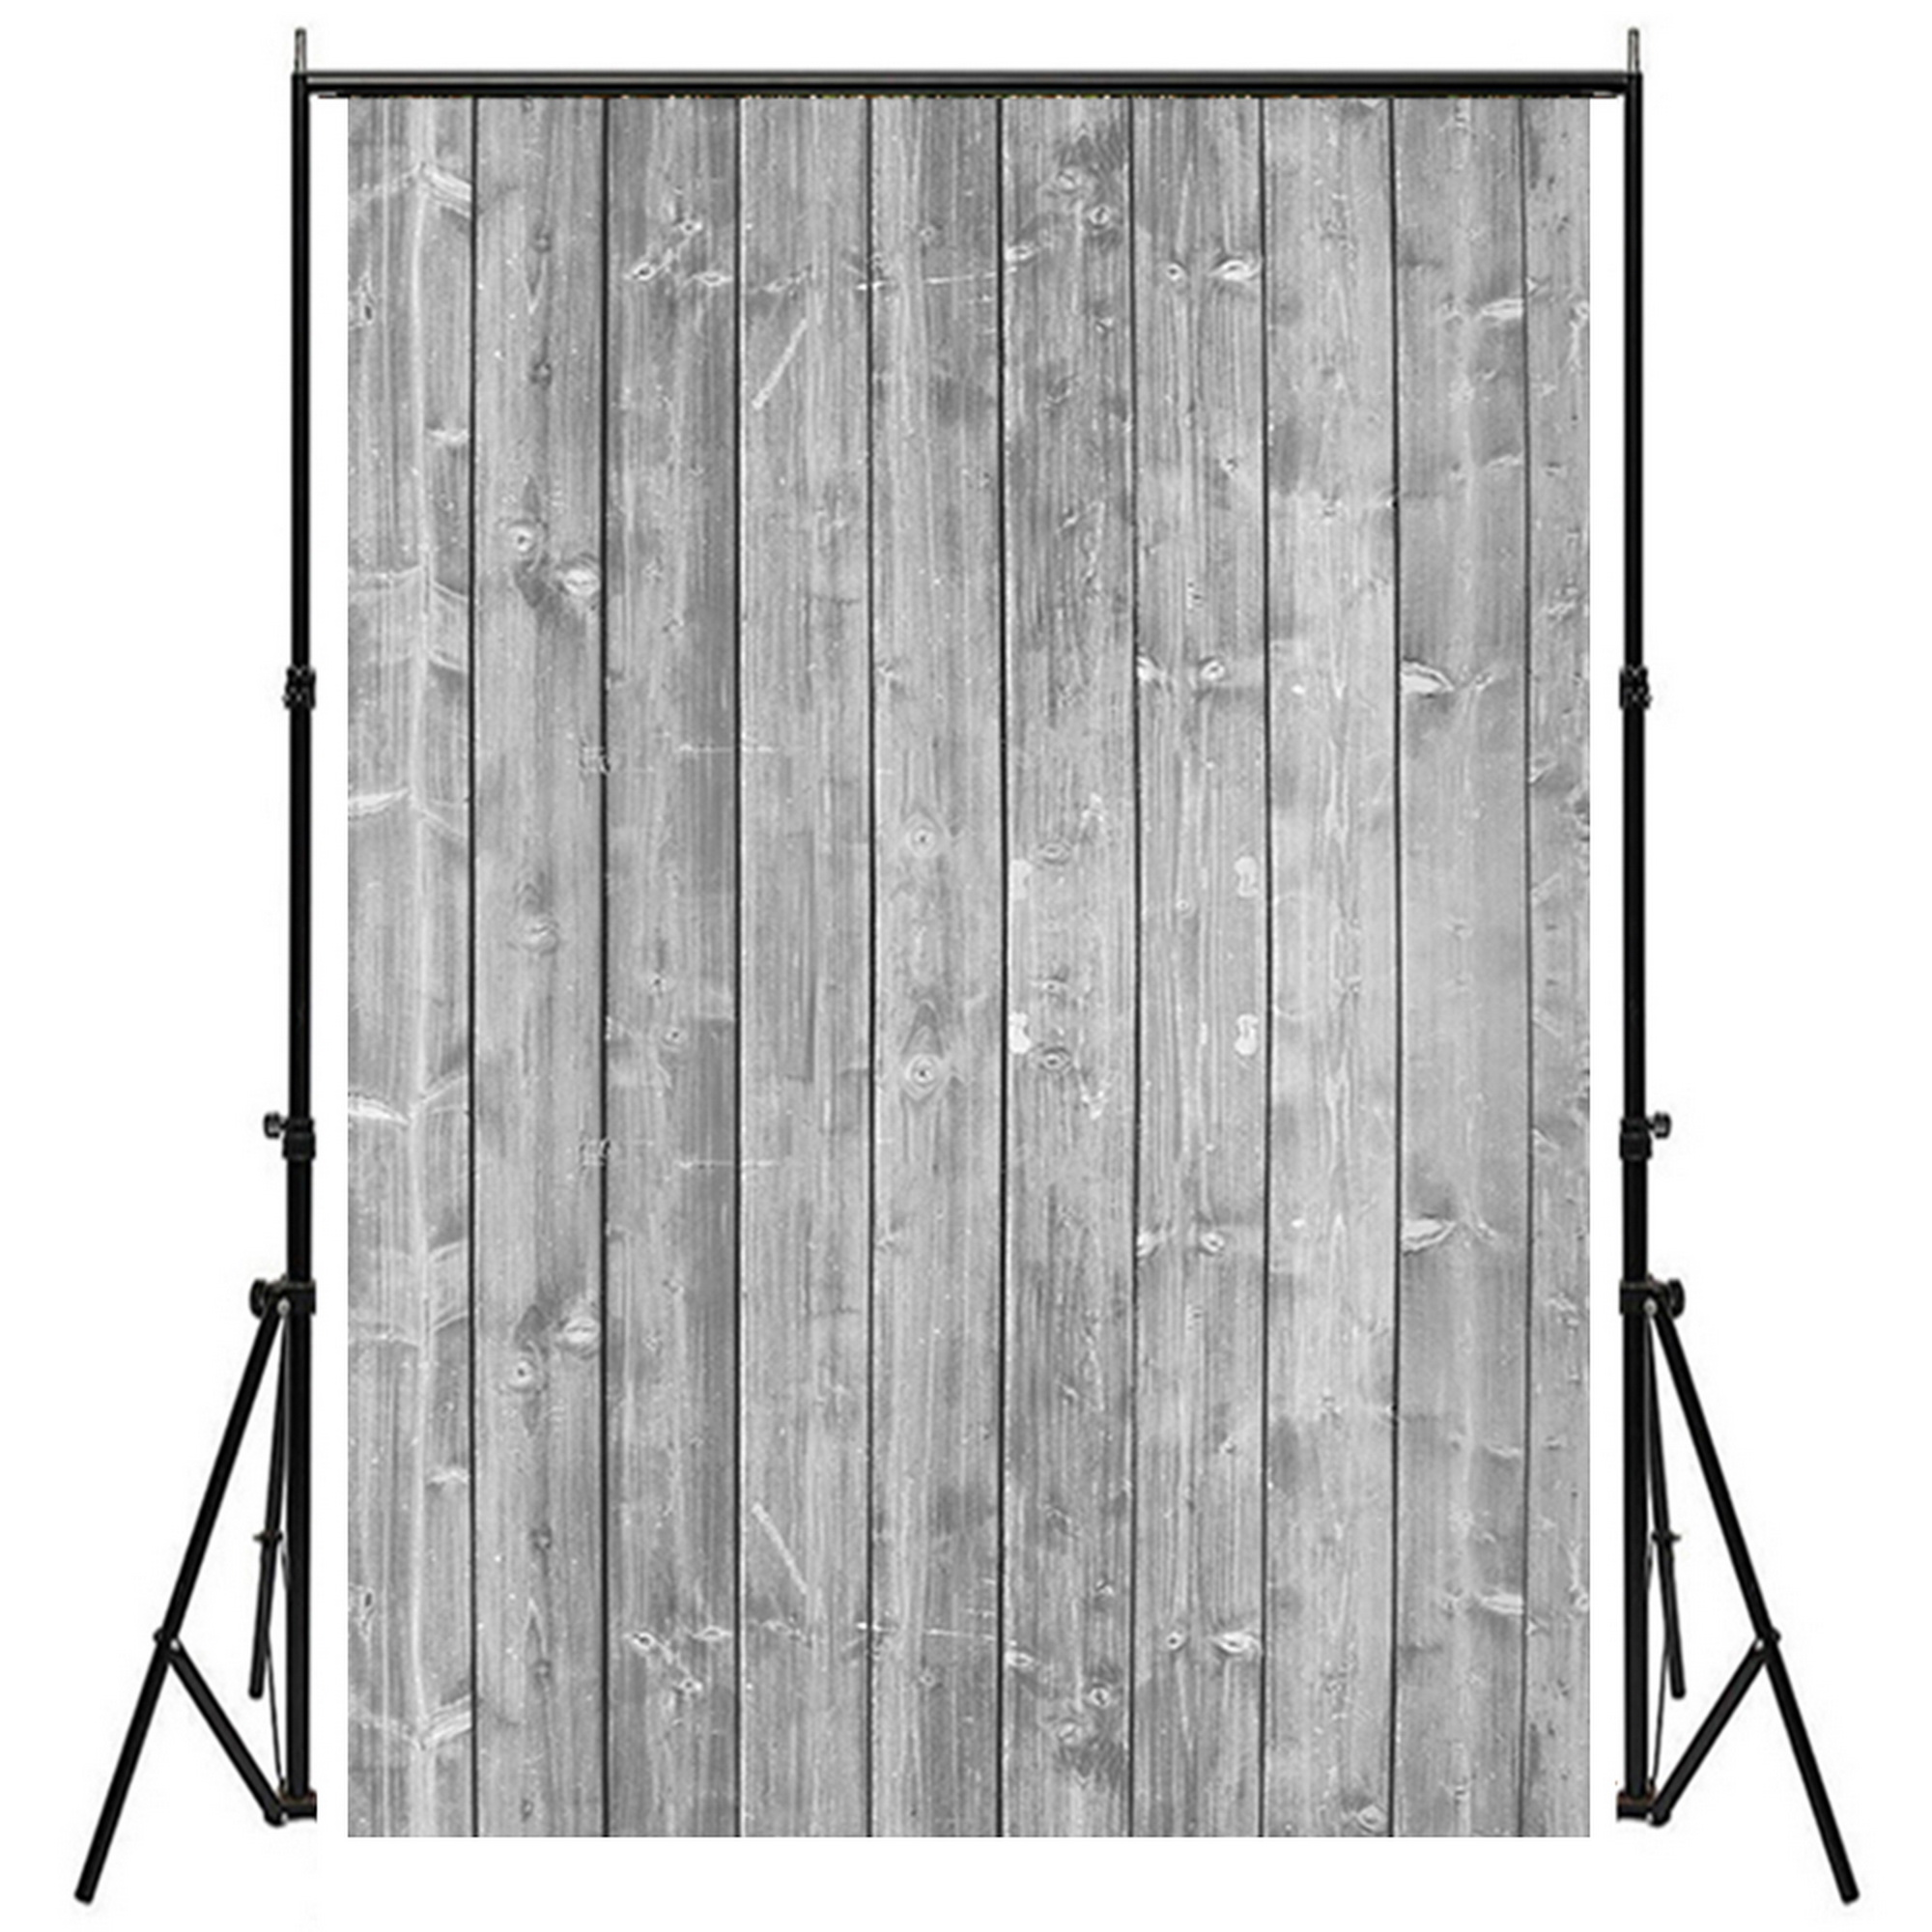 Photography Backdrops 5x7ft 3x5ft Classic Vintage Wood